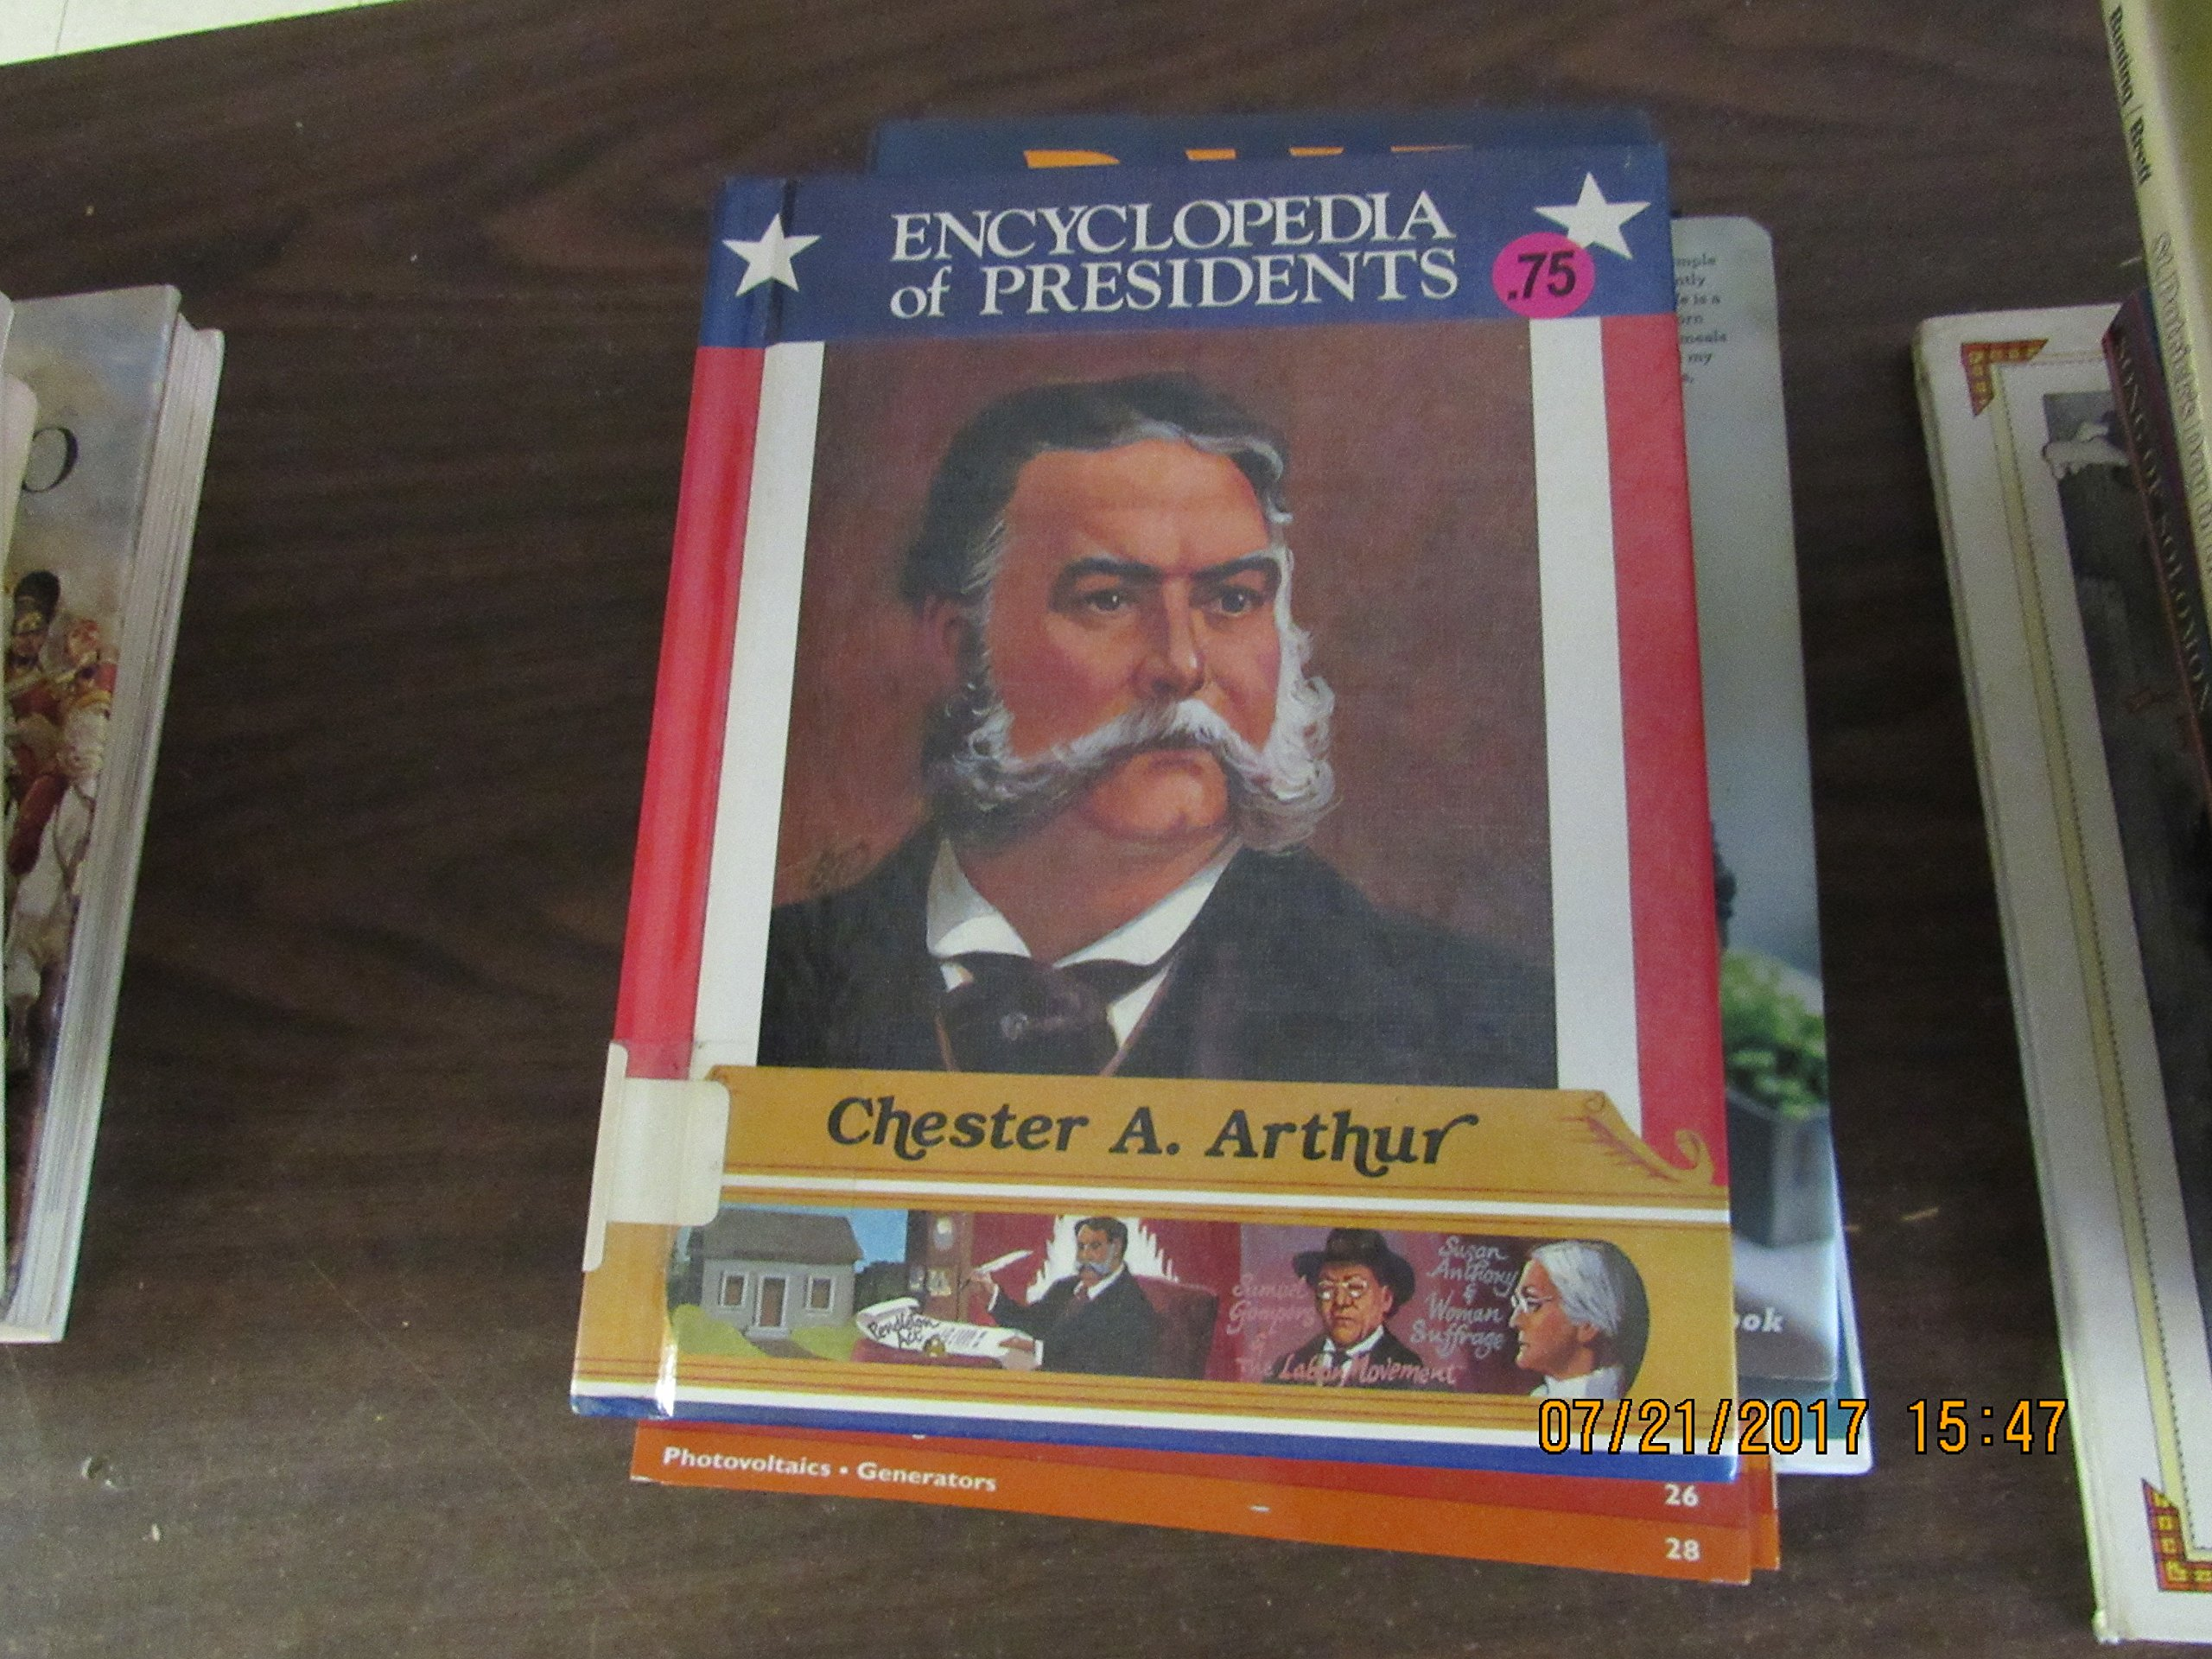 chester-a-arthur-twenty-first-president-of-the-united-states-encyclopedia-of-presidents